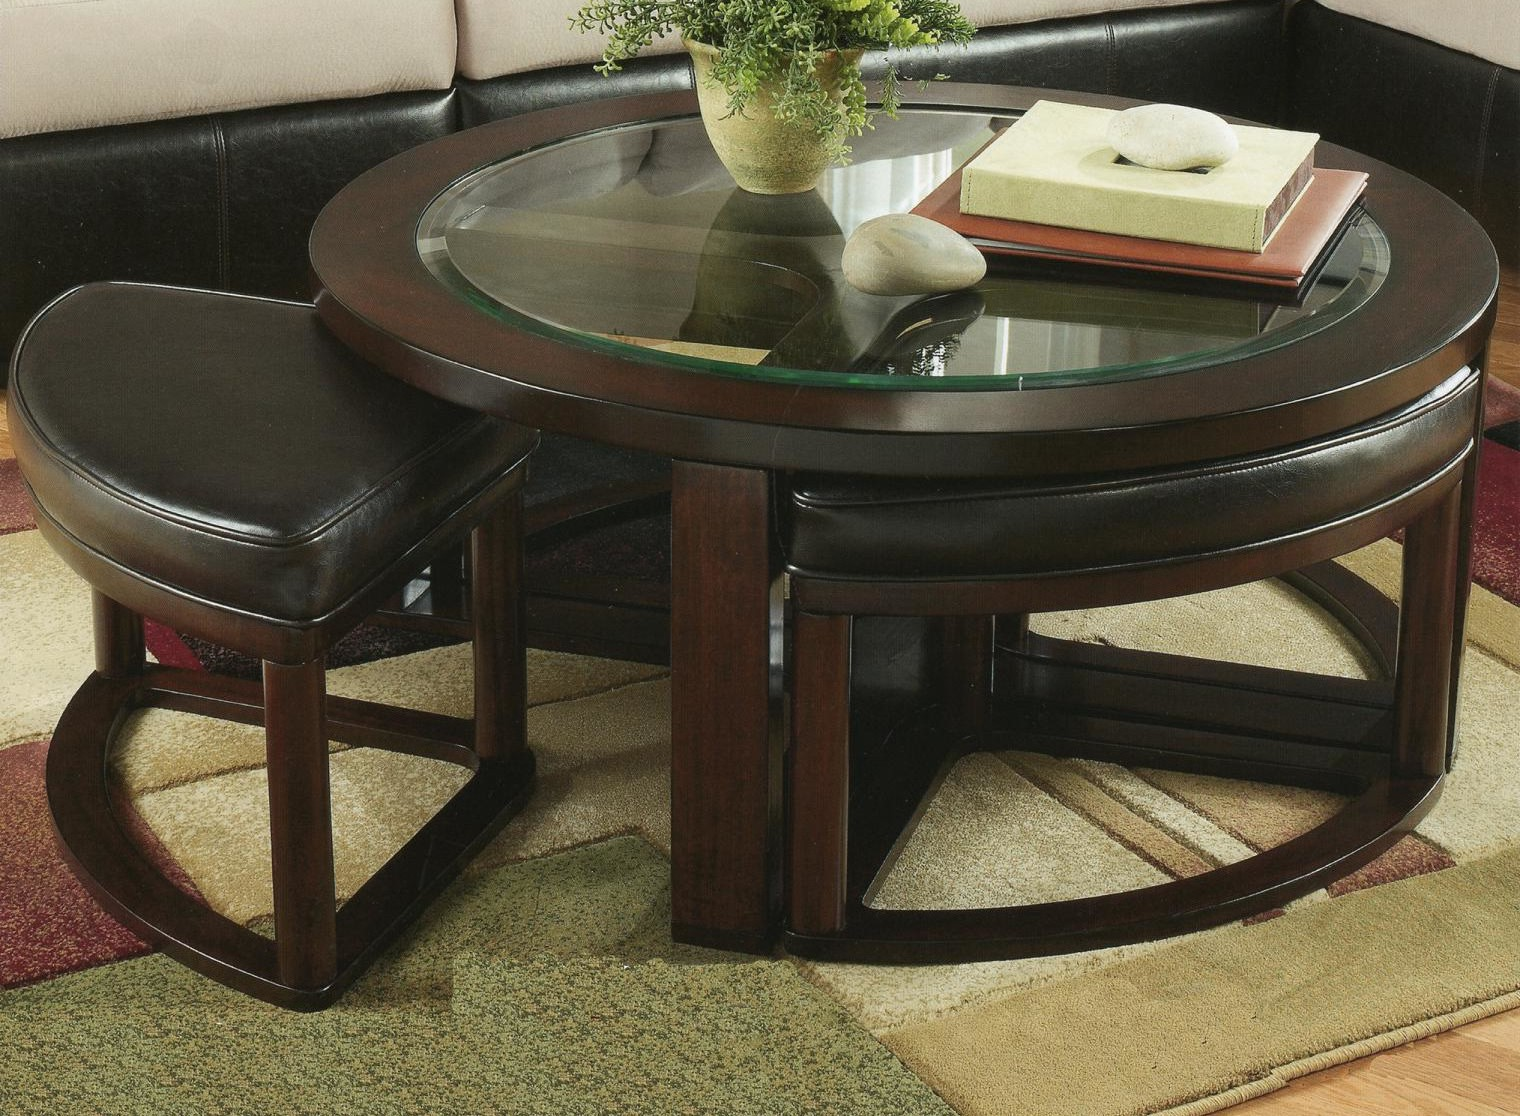 coffee table with chairs underneath roy home design. Black Bedroom Furniture Sets. Home Design Ideas